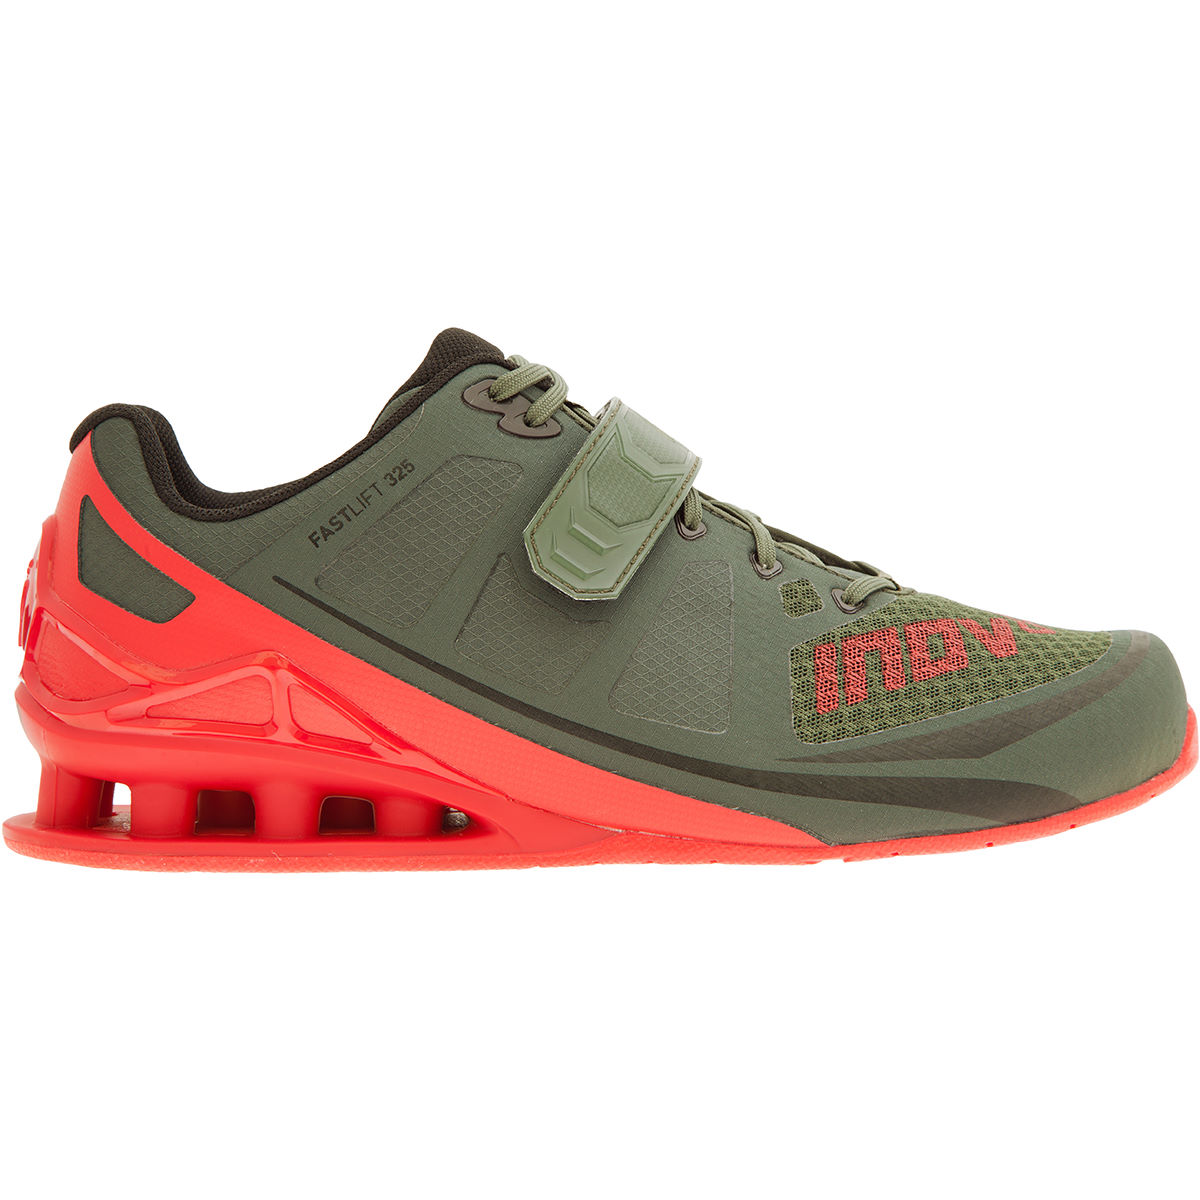 Chaussures d'haltérophilie Inov-8 Fastlift 325 - 11 UK Green/Red